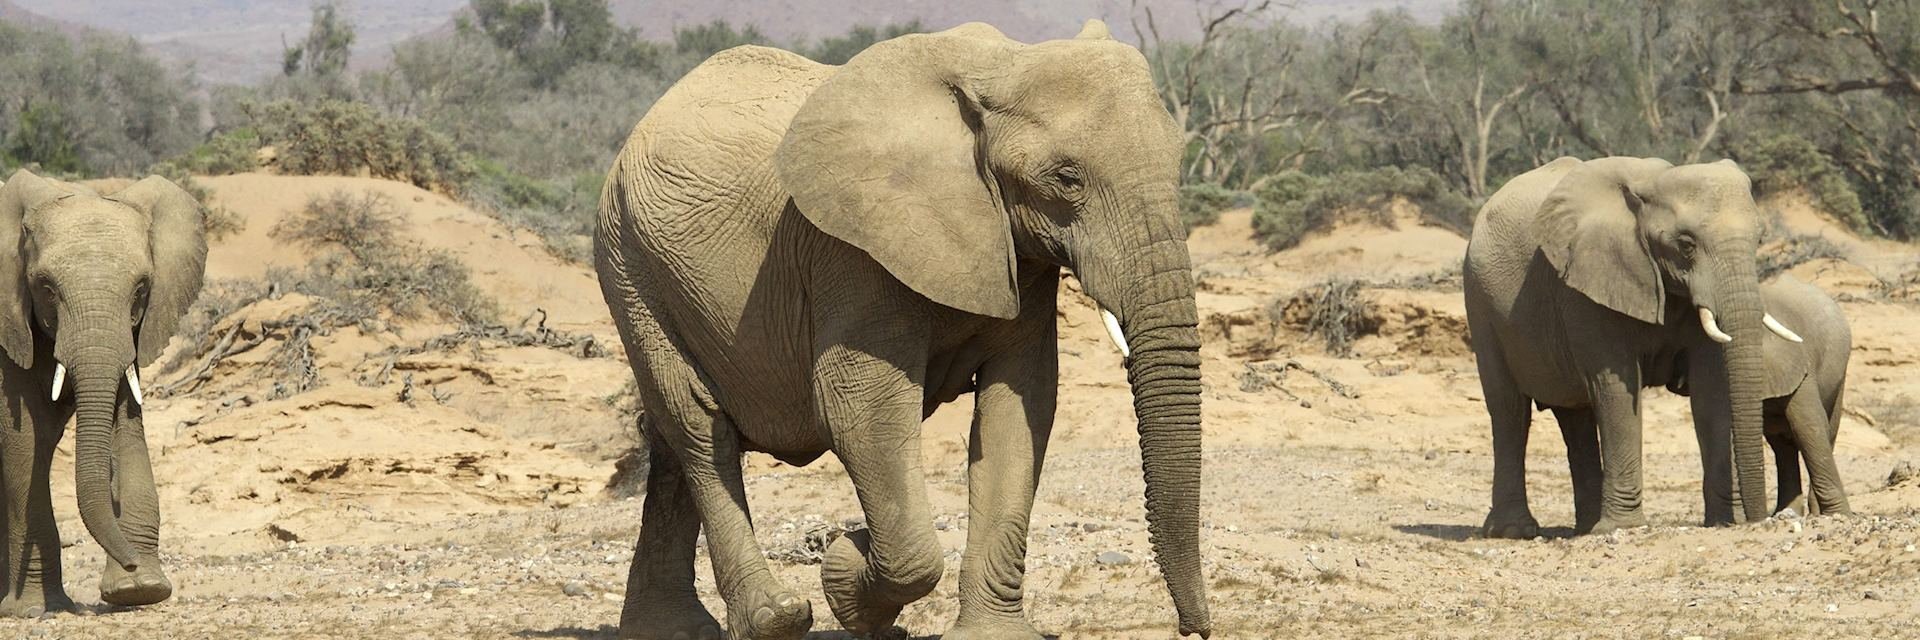 Elephants in Damaraland